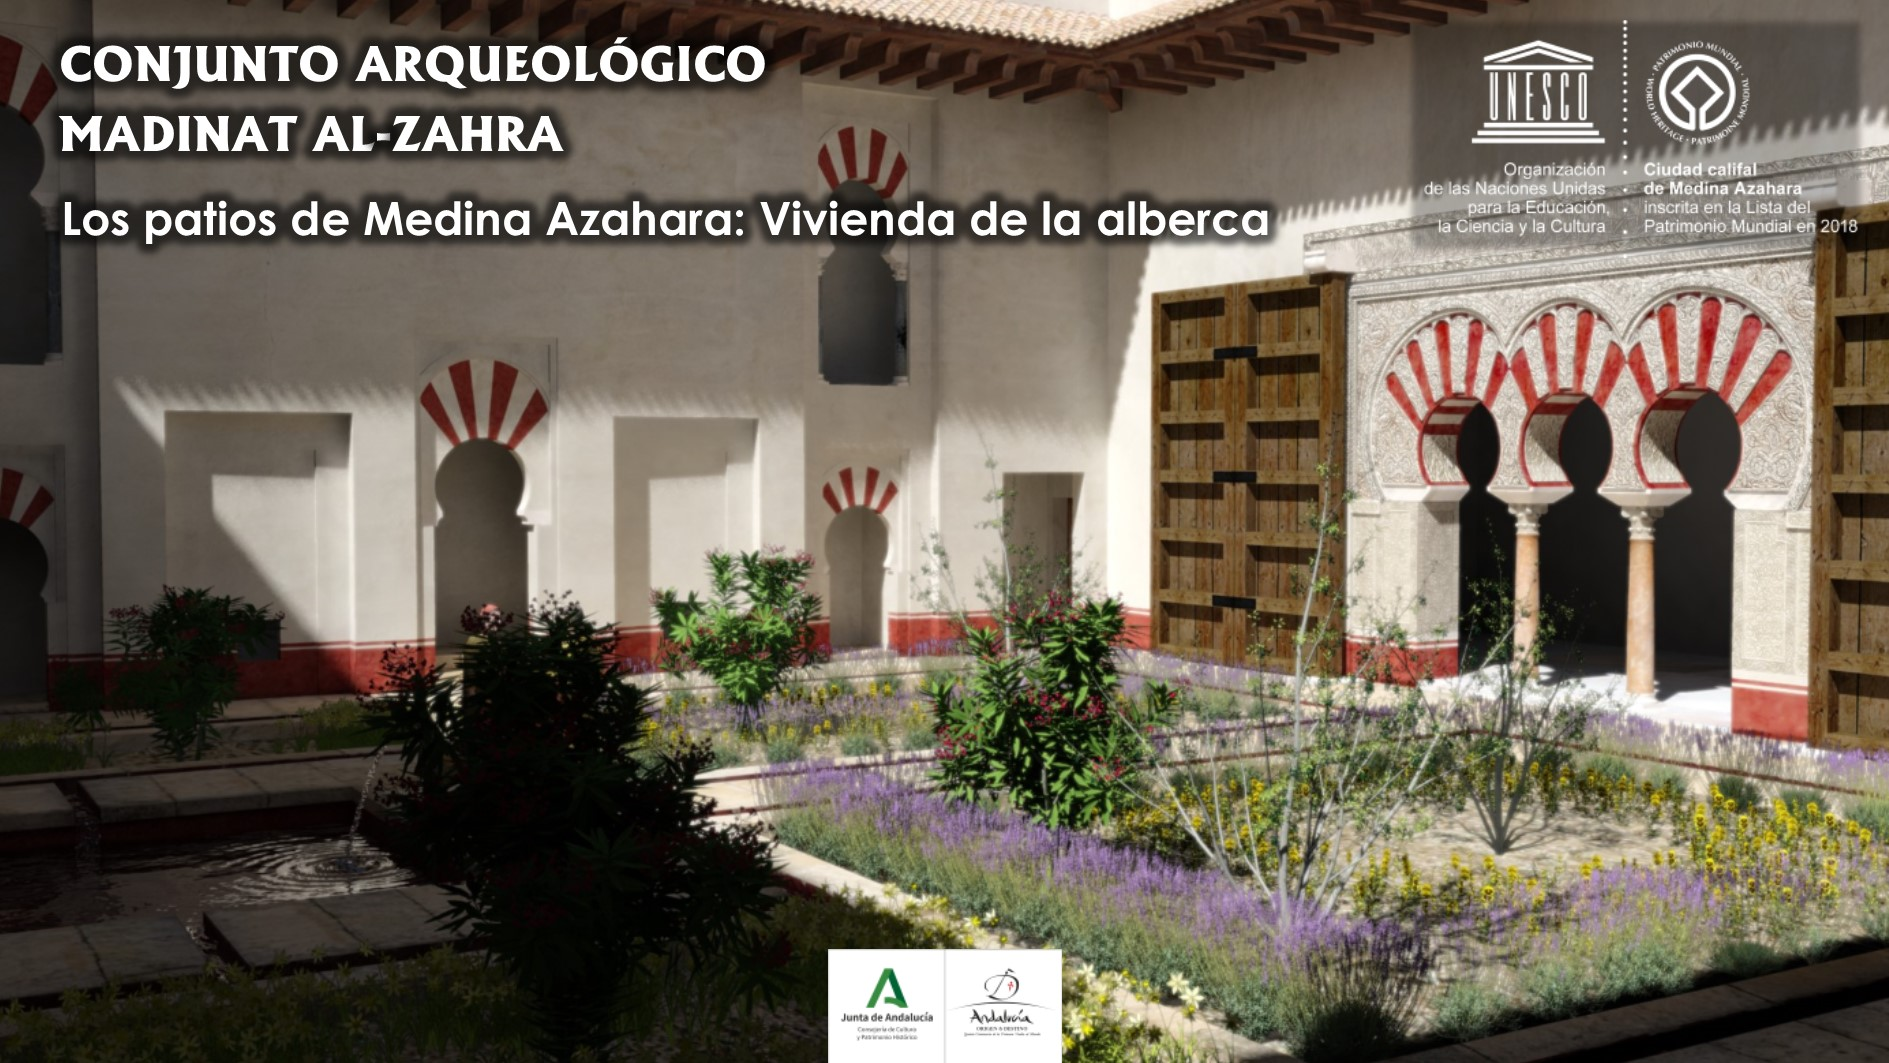 Recreación virtual de la vivienda de la alberca